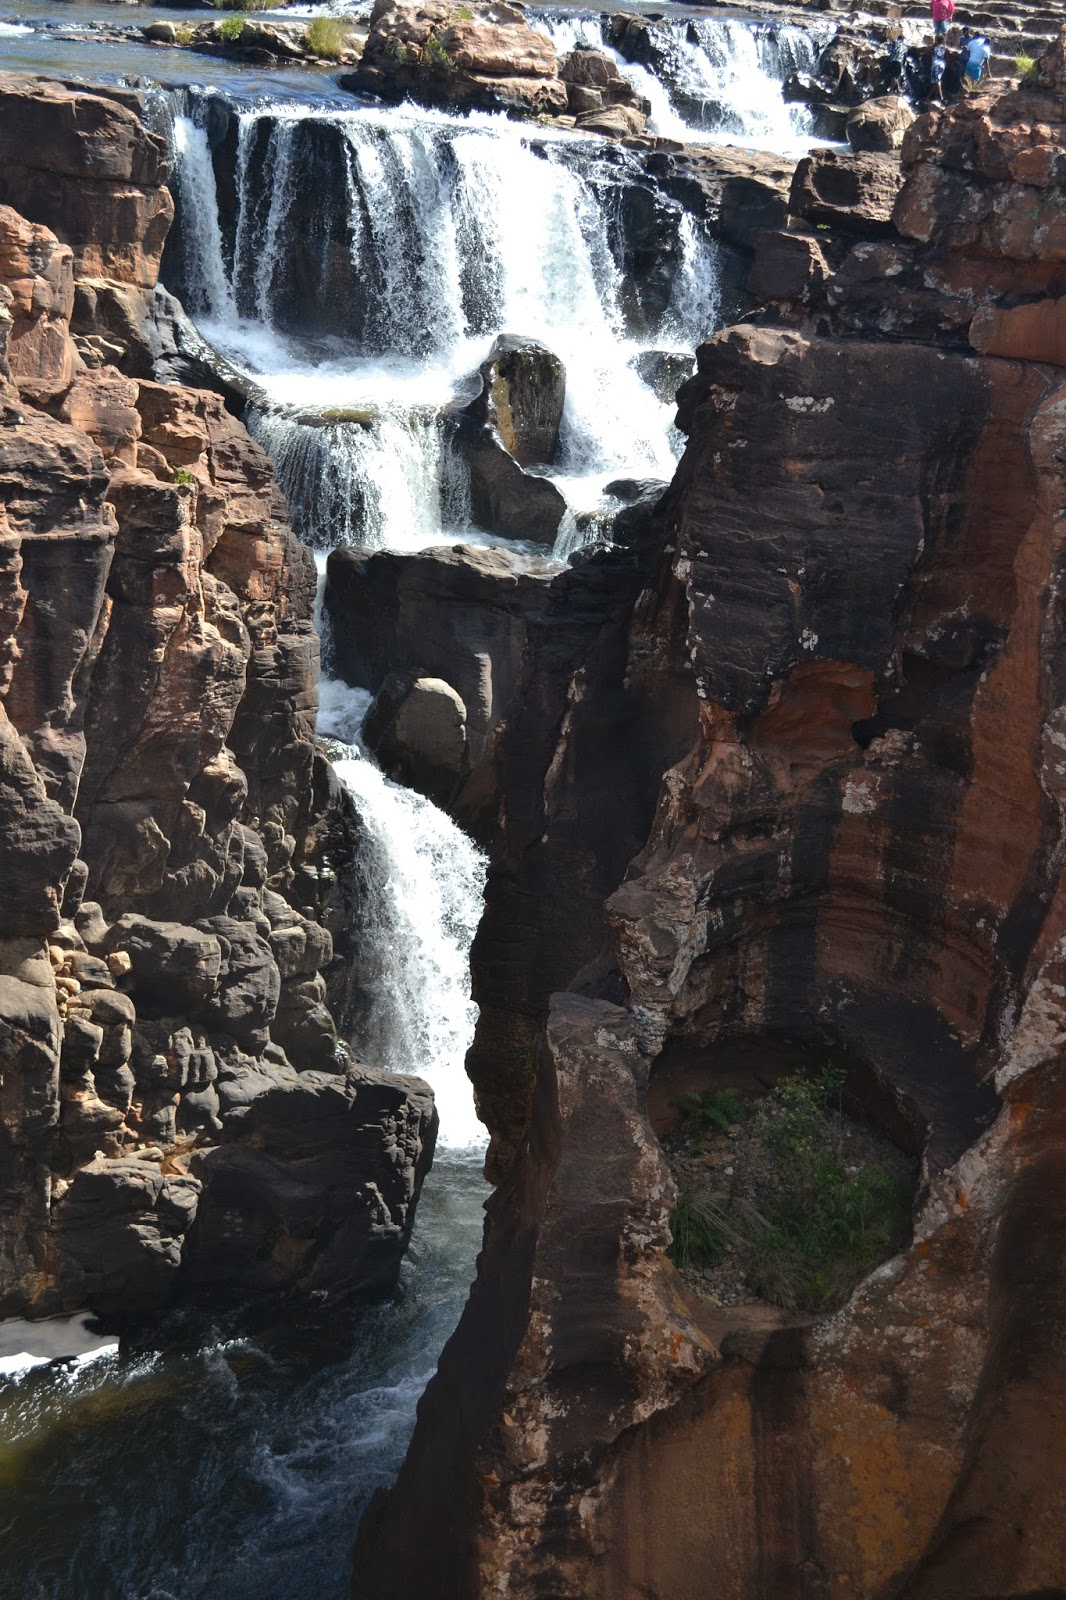 Bourke's Luck Potholes waterfall